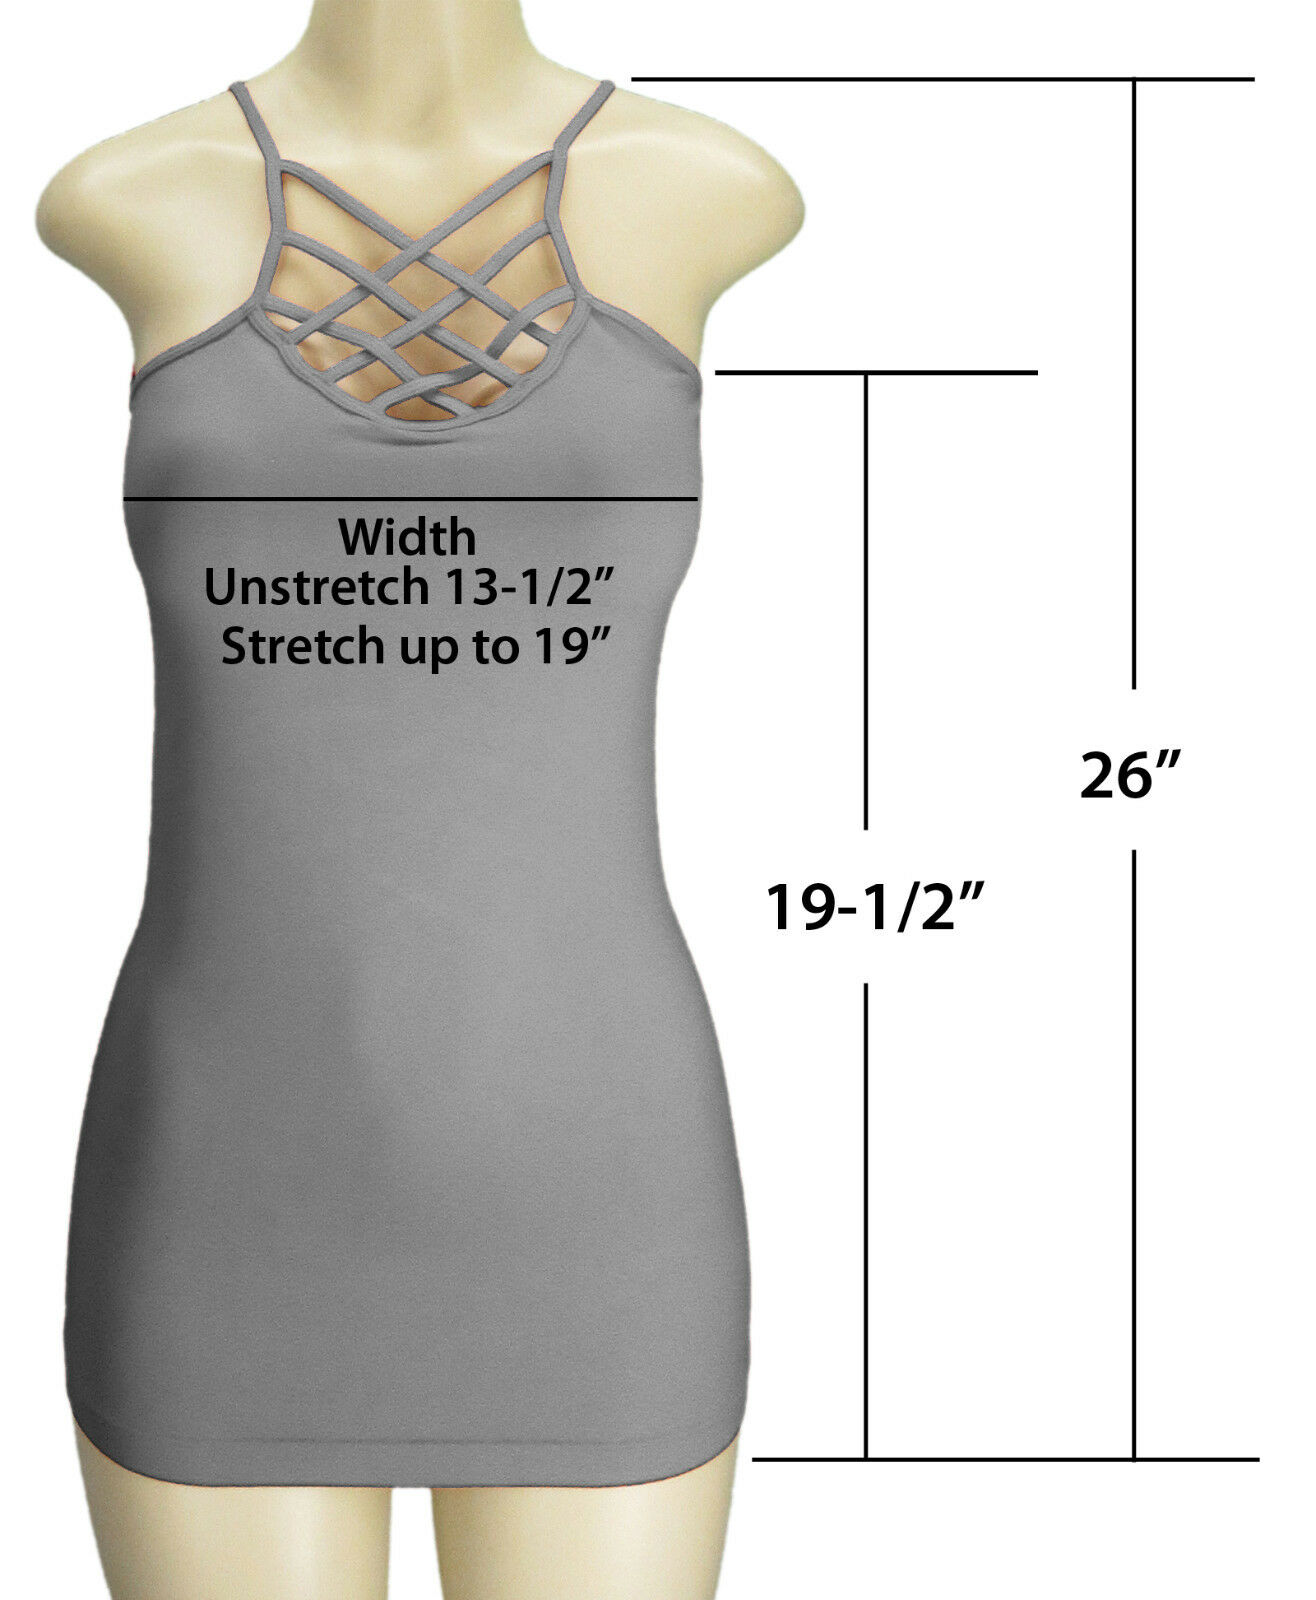 Criss Cross Strappy Caged Reversible Front or Back Stretch Cami Camisole Tank Clothing, Shoes & Accessories